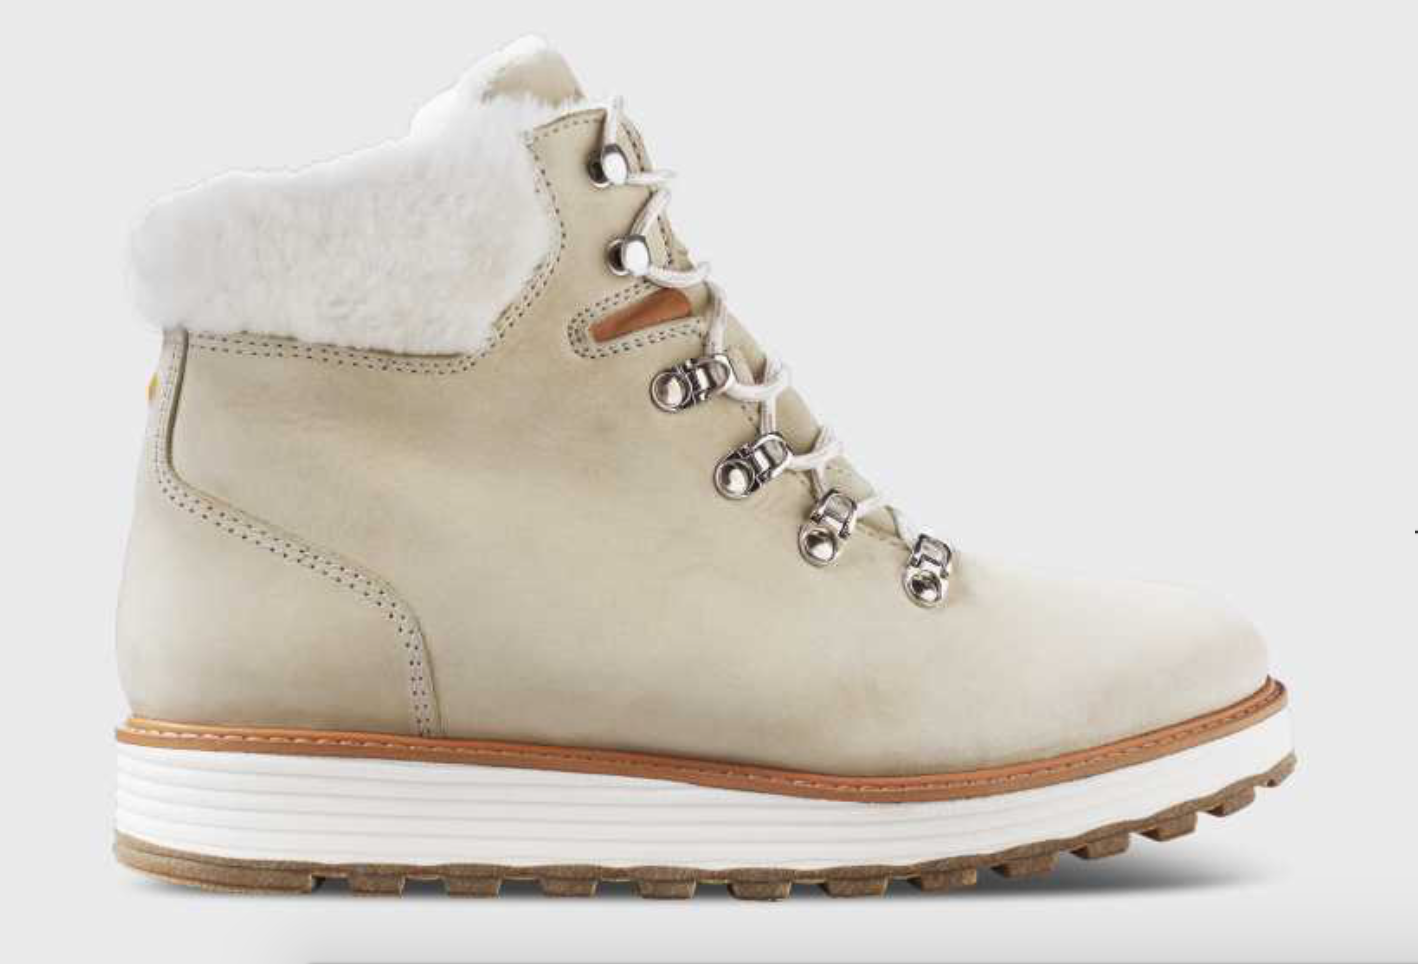 Samuel HUBBARD winter boots - Give her the gift of comfort and style with these Shear Alpine boots from Samuel Hubbard. These luxurious boots are built for comfort, and have great traction to help in the rainy or snowy weather. They are water resistant, and have a rubber sole with great tread to help walking around in stormy conditions. The lacing has metal hardware that makes them easy to slip on and off. They are pretty lightweight for a pair of boots like this, so there's no clunkiness to worry about. The insole is removable if you have your own custom insoles to wear instead, but we love the softness of these. These Shear Alpine boots also have a super soft lining inside for maximum warmth and coziness. And they look adorable!